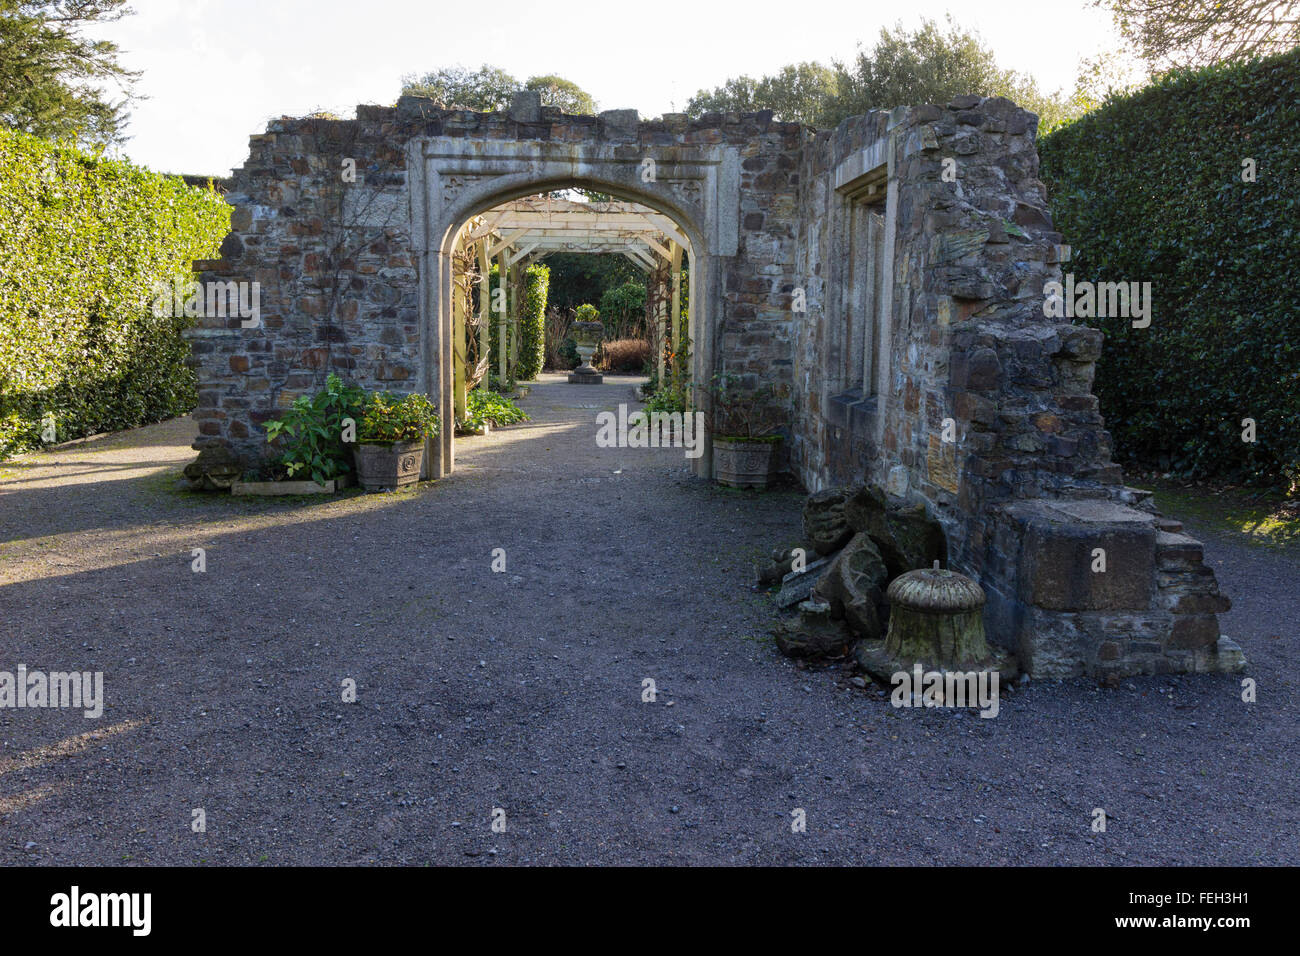 Late winter sunlight lights the reconstructed stonework of the relic garden at Mt Edgcumbe, Cornwall - Stock Image